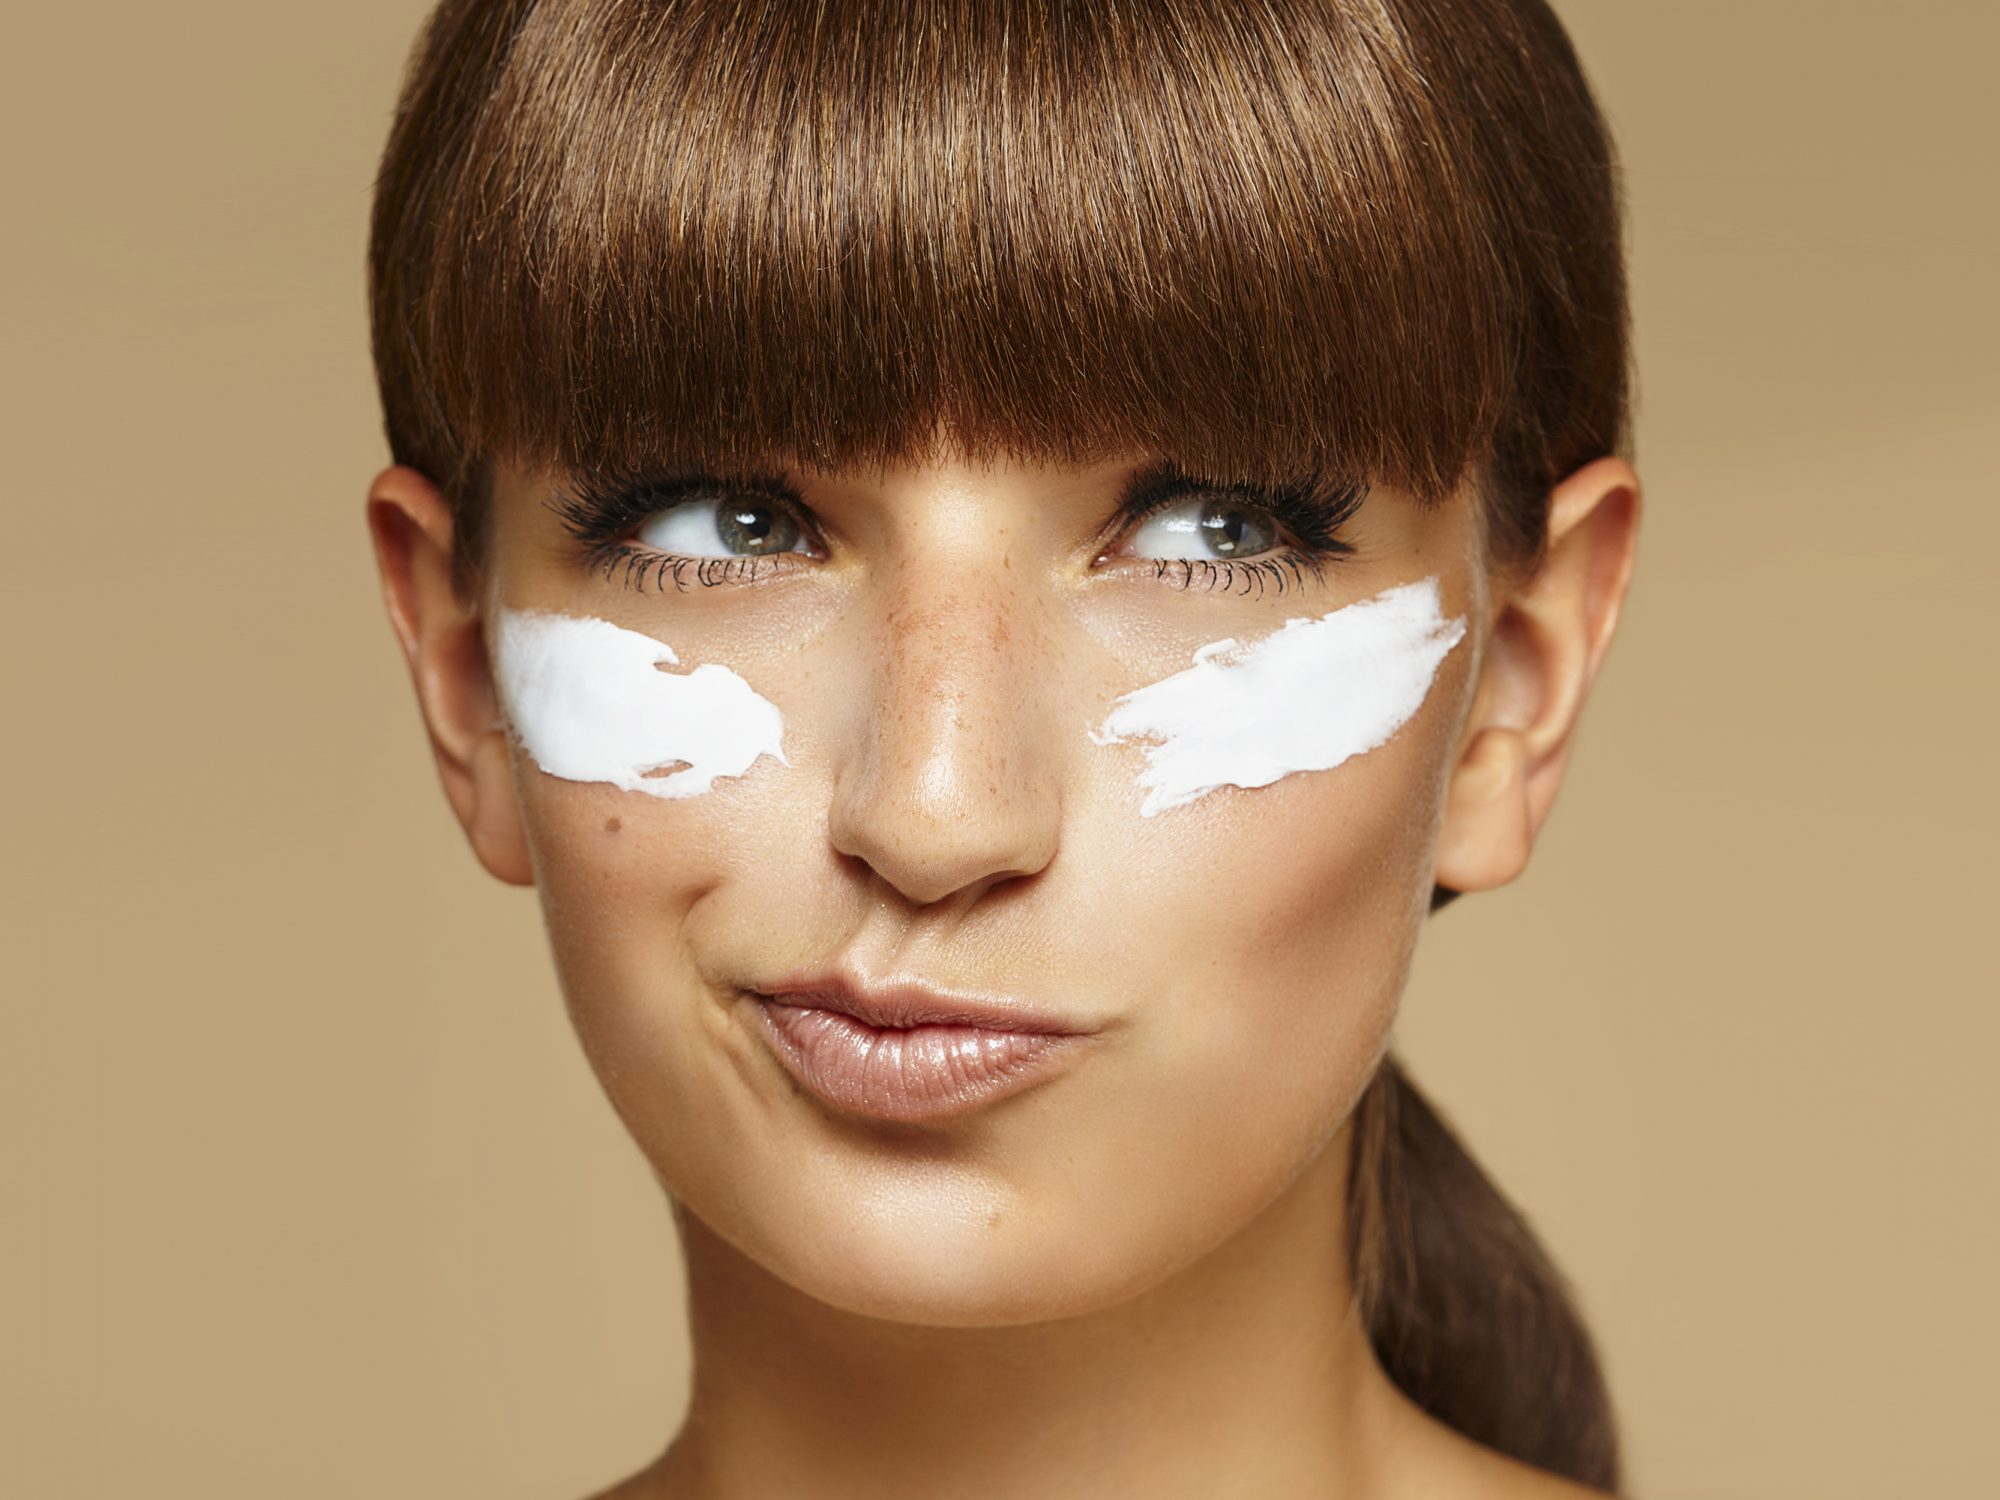 difference-between-eye-cream-and-moisturizer: woman with eye cream